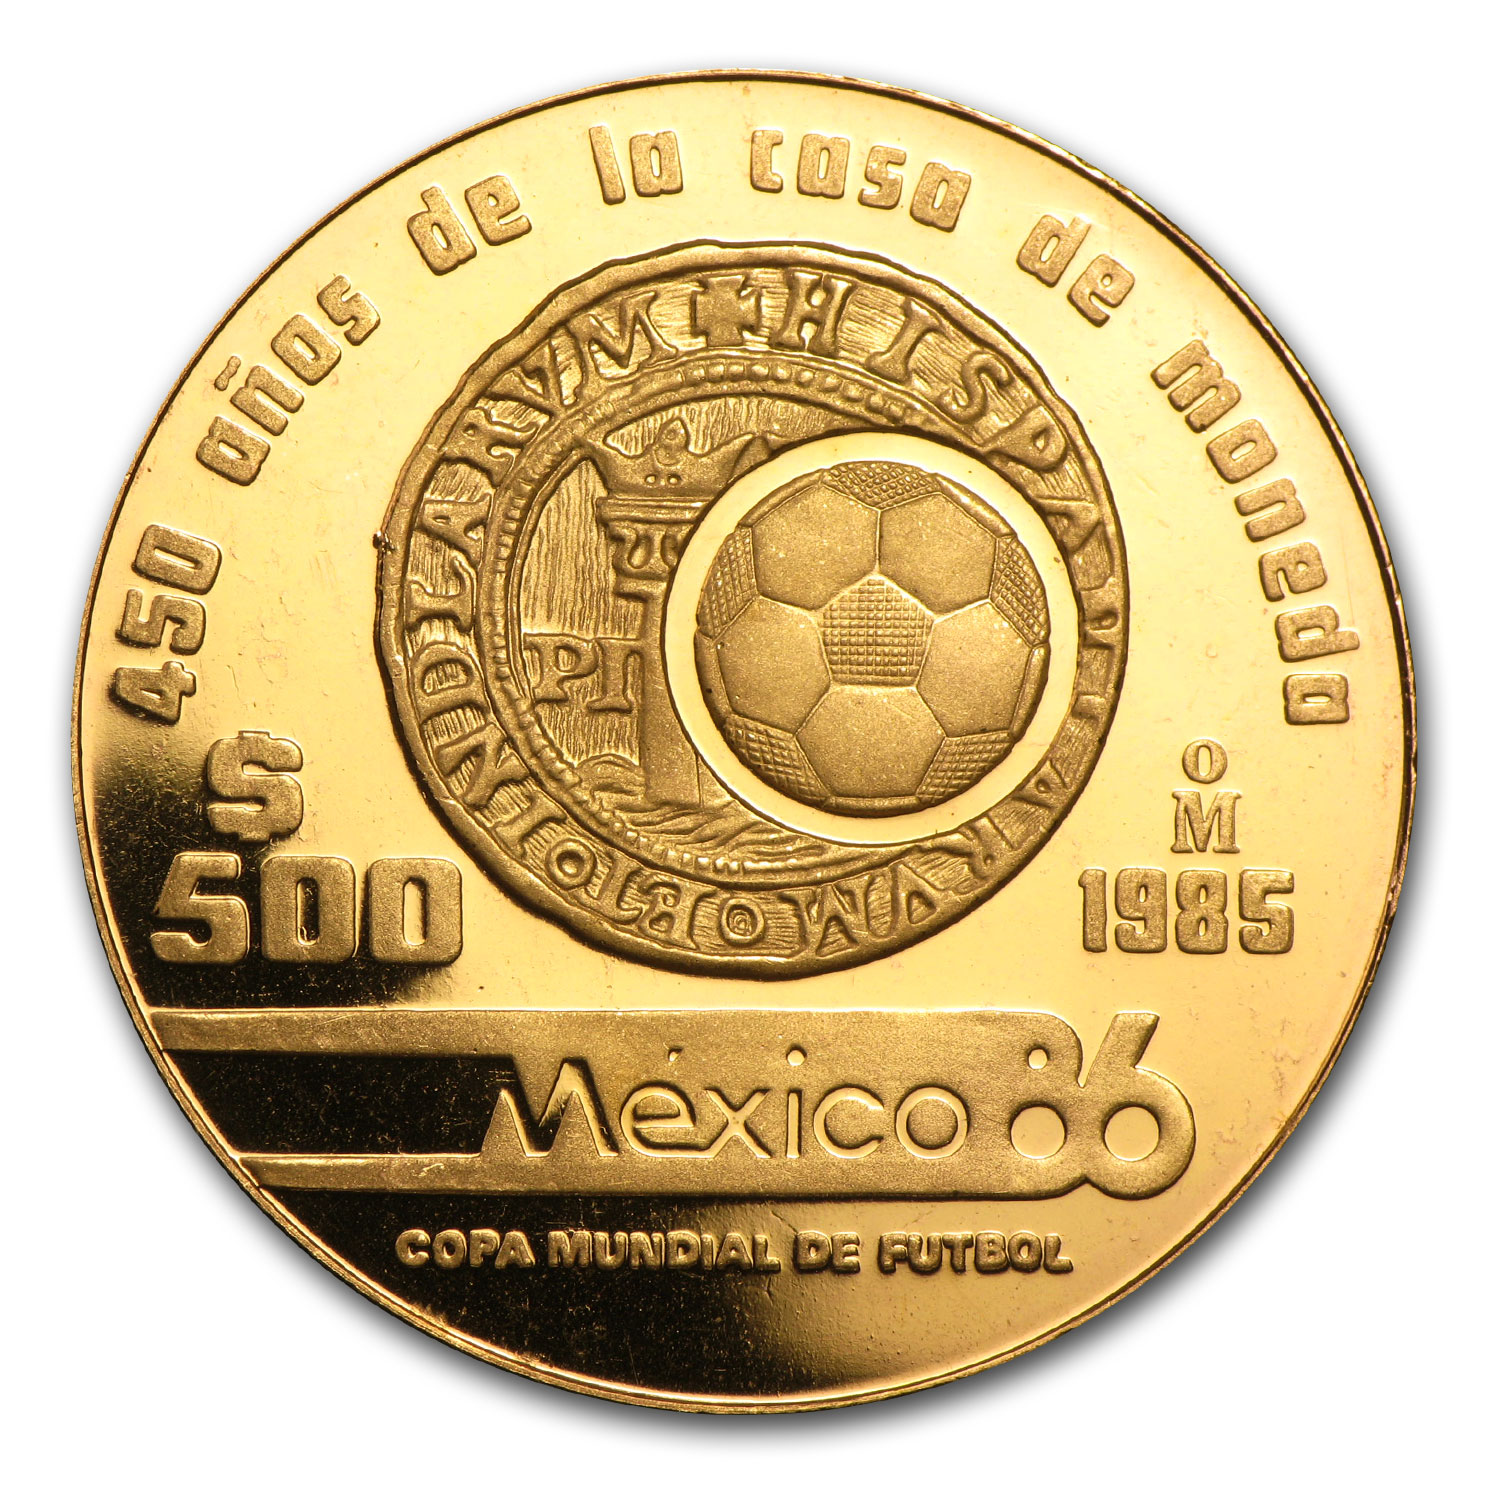 1985 or 1986 Mexico Gold 500 Pesos Proof